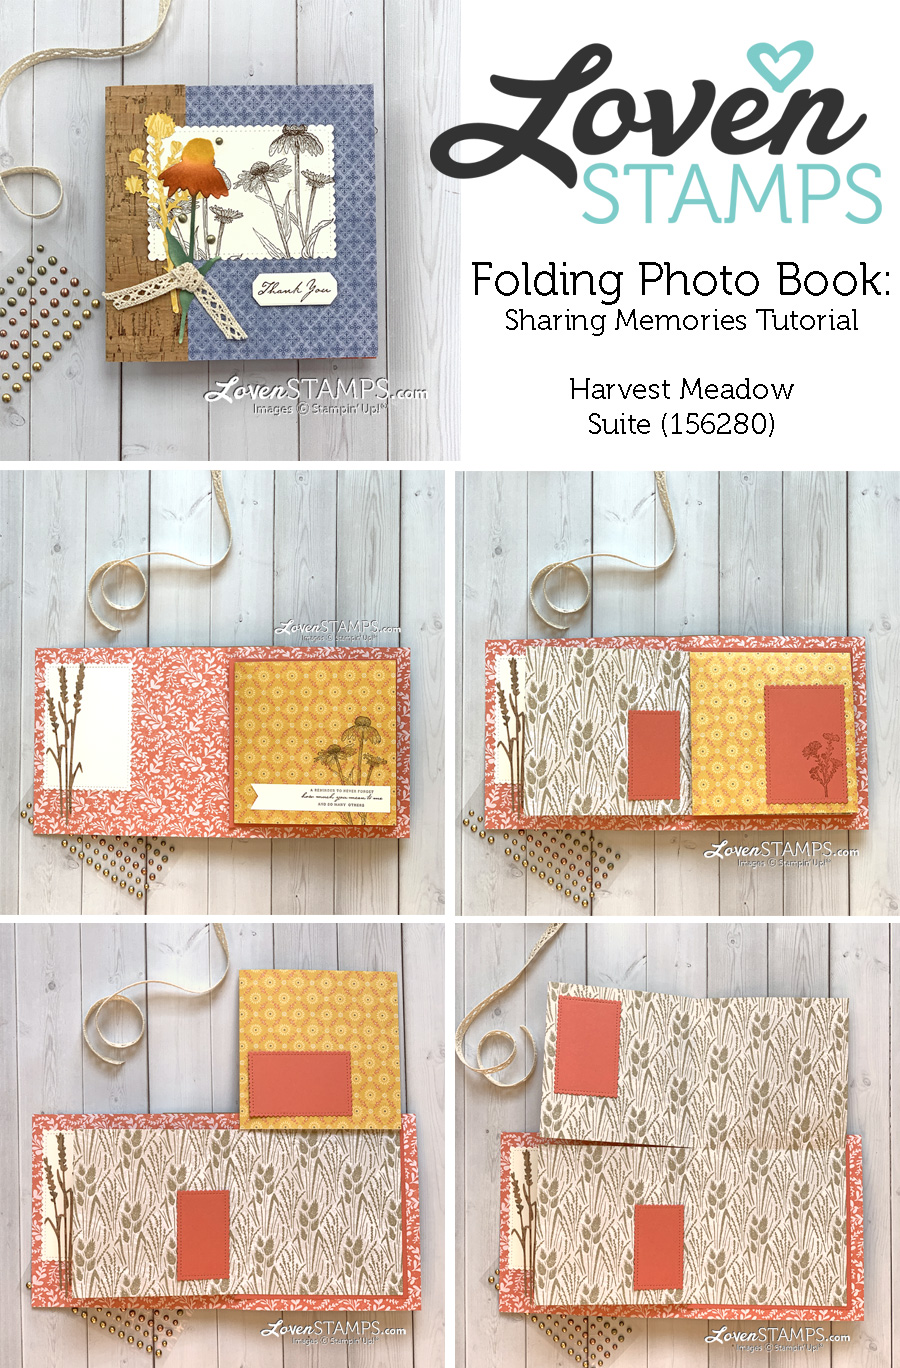 natures-harvest-meadow-suite-stampin-up-stitched-sweetly-dies-vintage-lace-memory-photo-book-tutorial